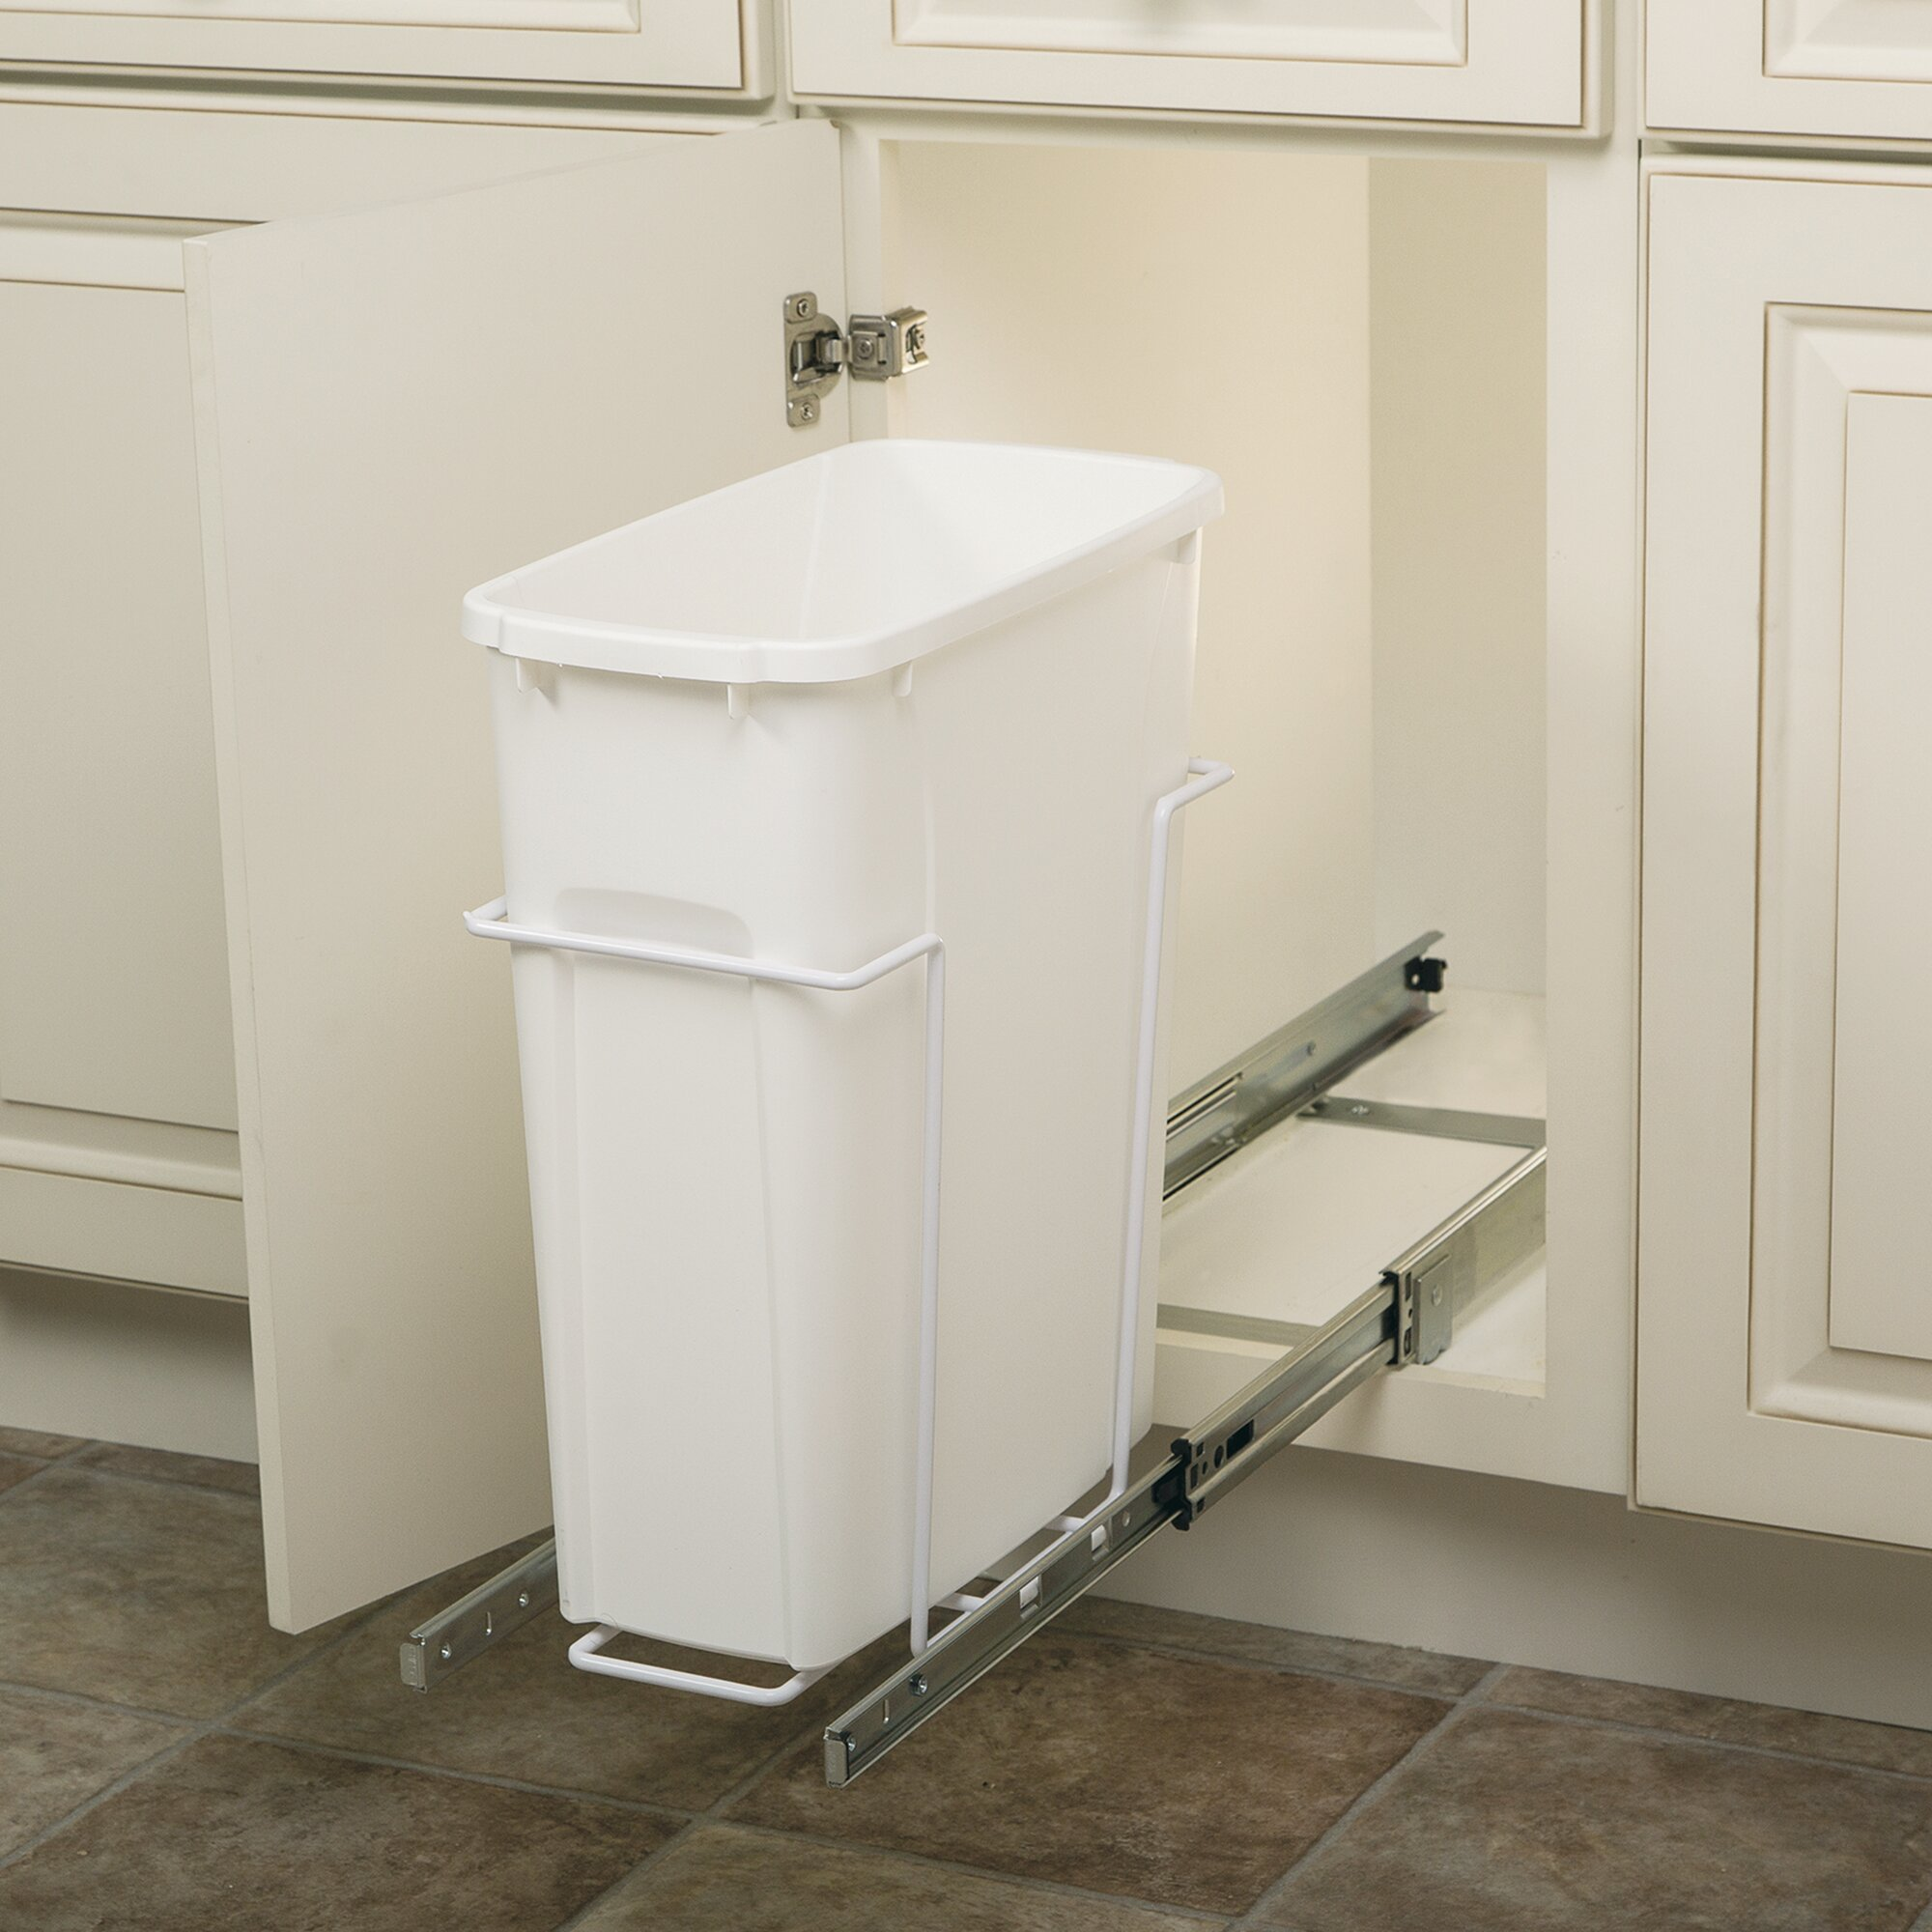 Knape amp vogt 5 gal in cabinet pull out bottom mount trash can amp reviews wayfair